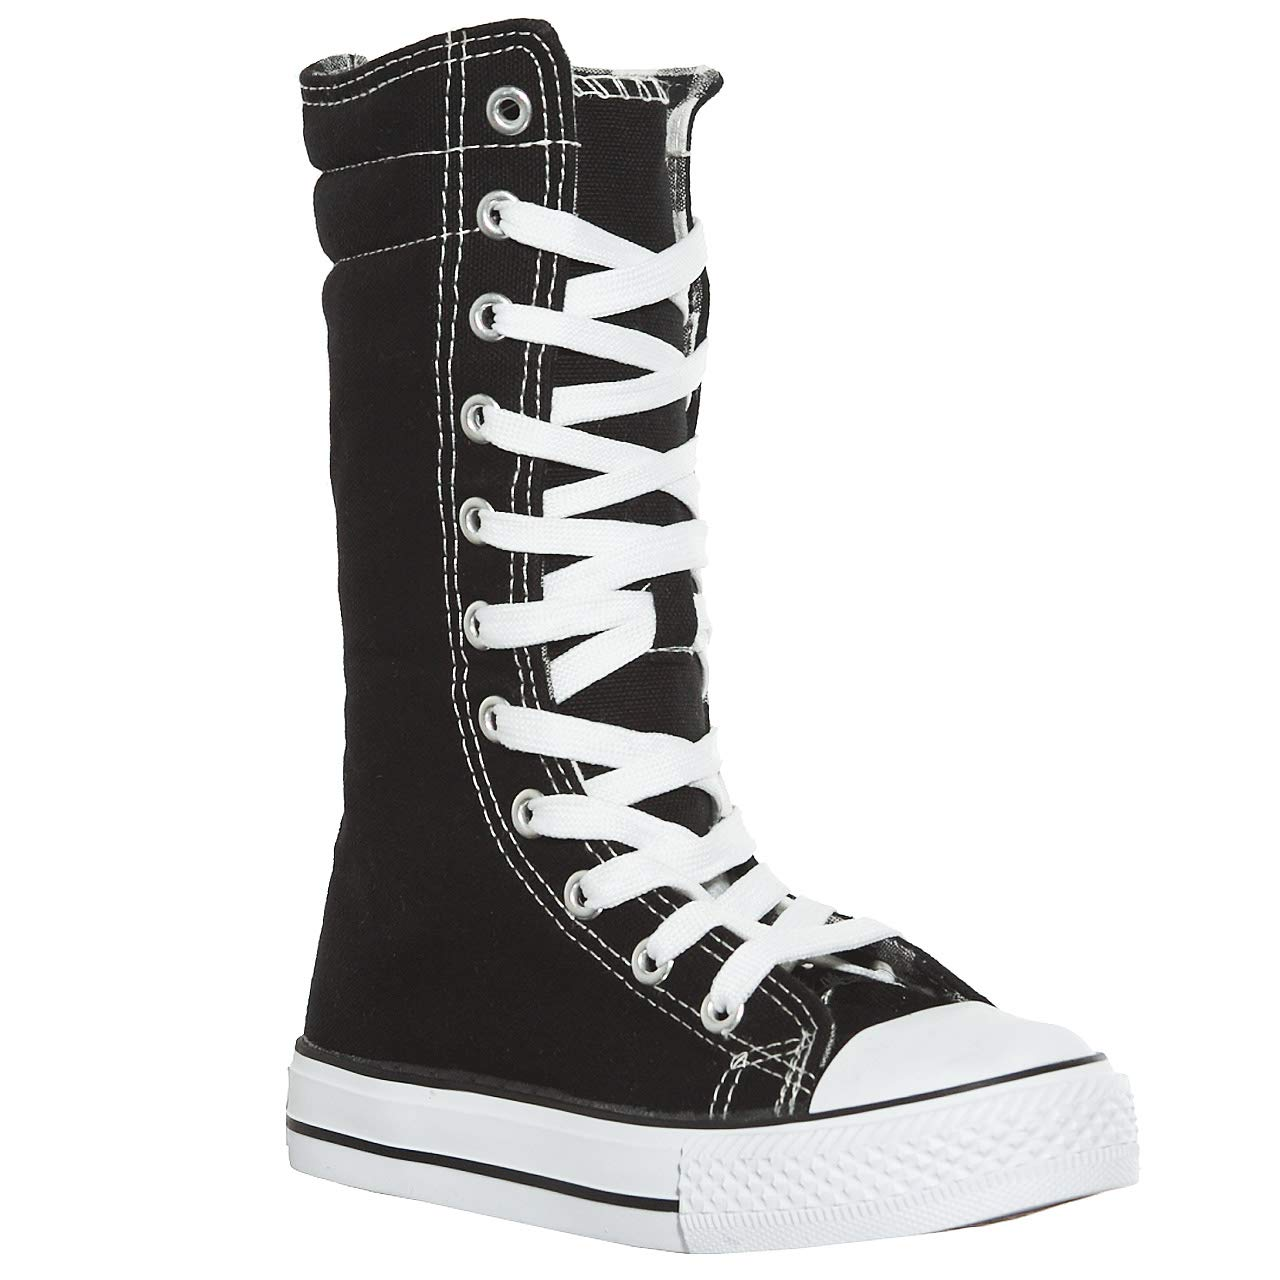 New Canvas Sneakers Flat Tall Punk Skate Shoes Lace up Knee High Boots for Kids(11, Black/White)[Apparel]